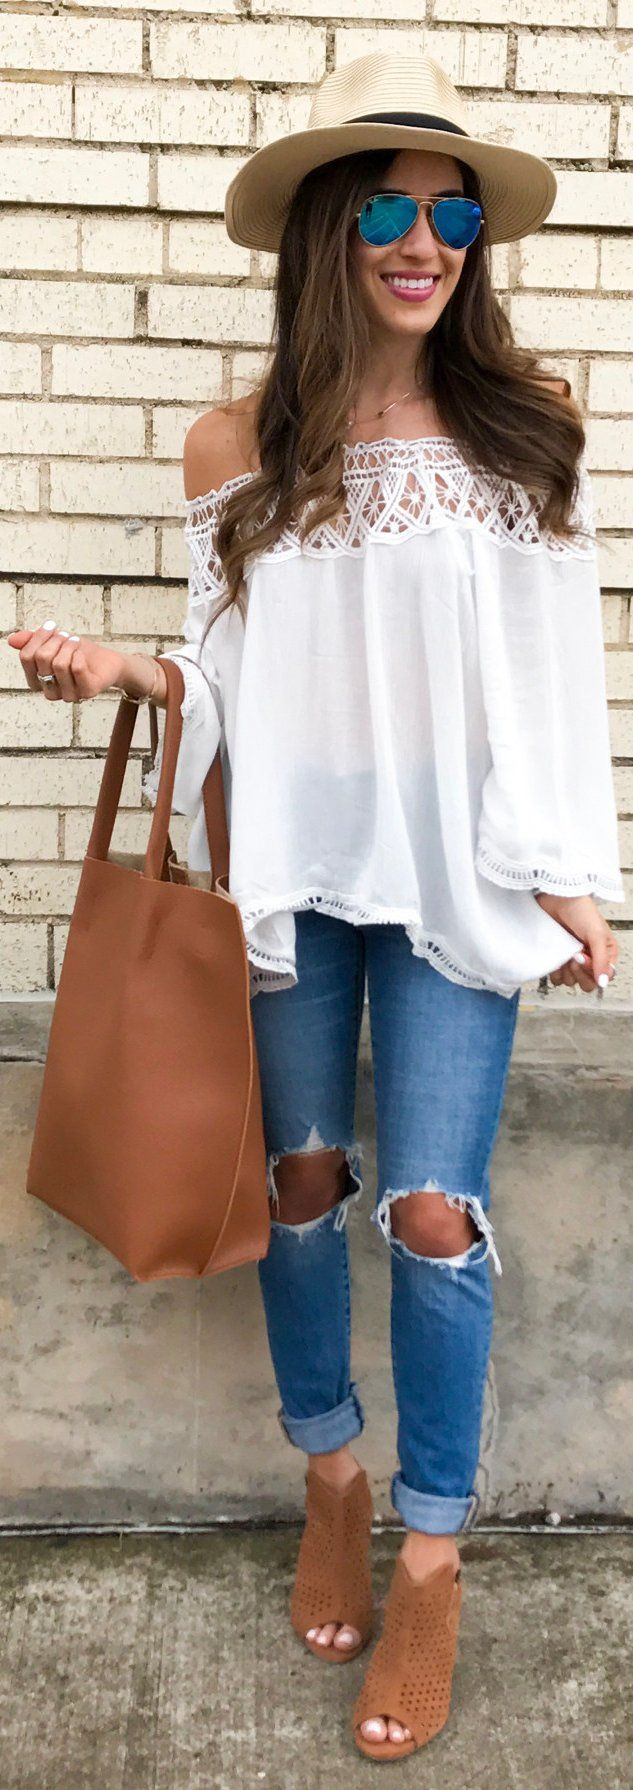 Beach Hat / White Off Shoulder Blouse / Brown Leather Tote Bag / Destroyed Denim / Brown Open Toe Suede Booties